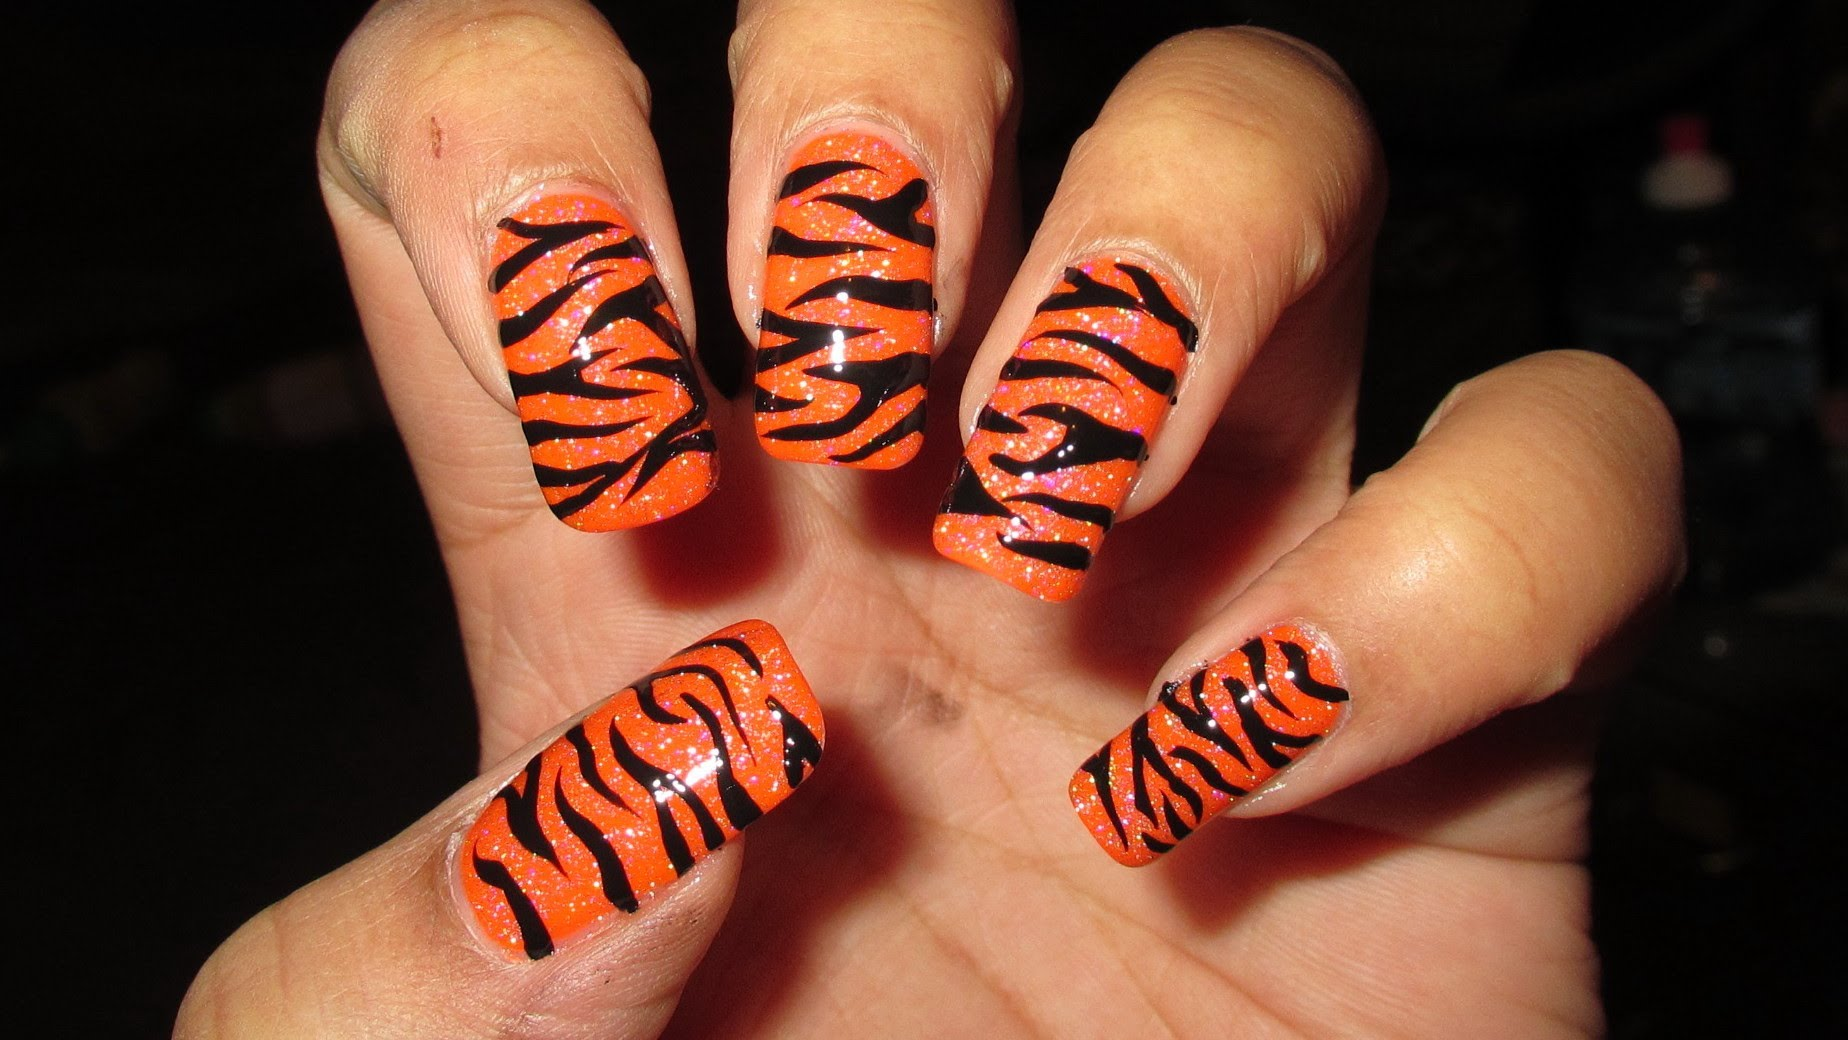 Lsu Nail Designs | Best Nail Designs 2018